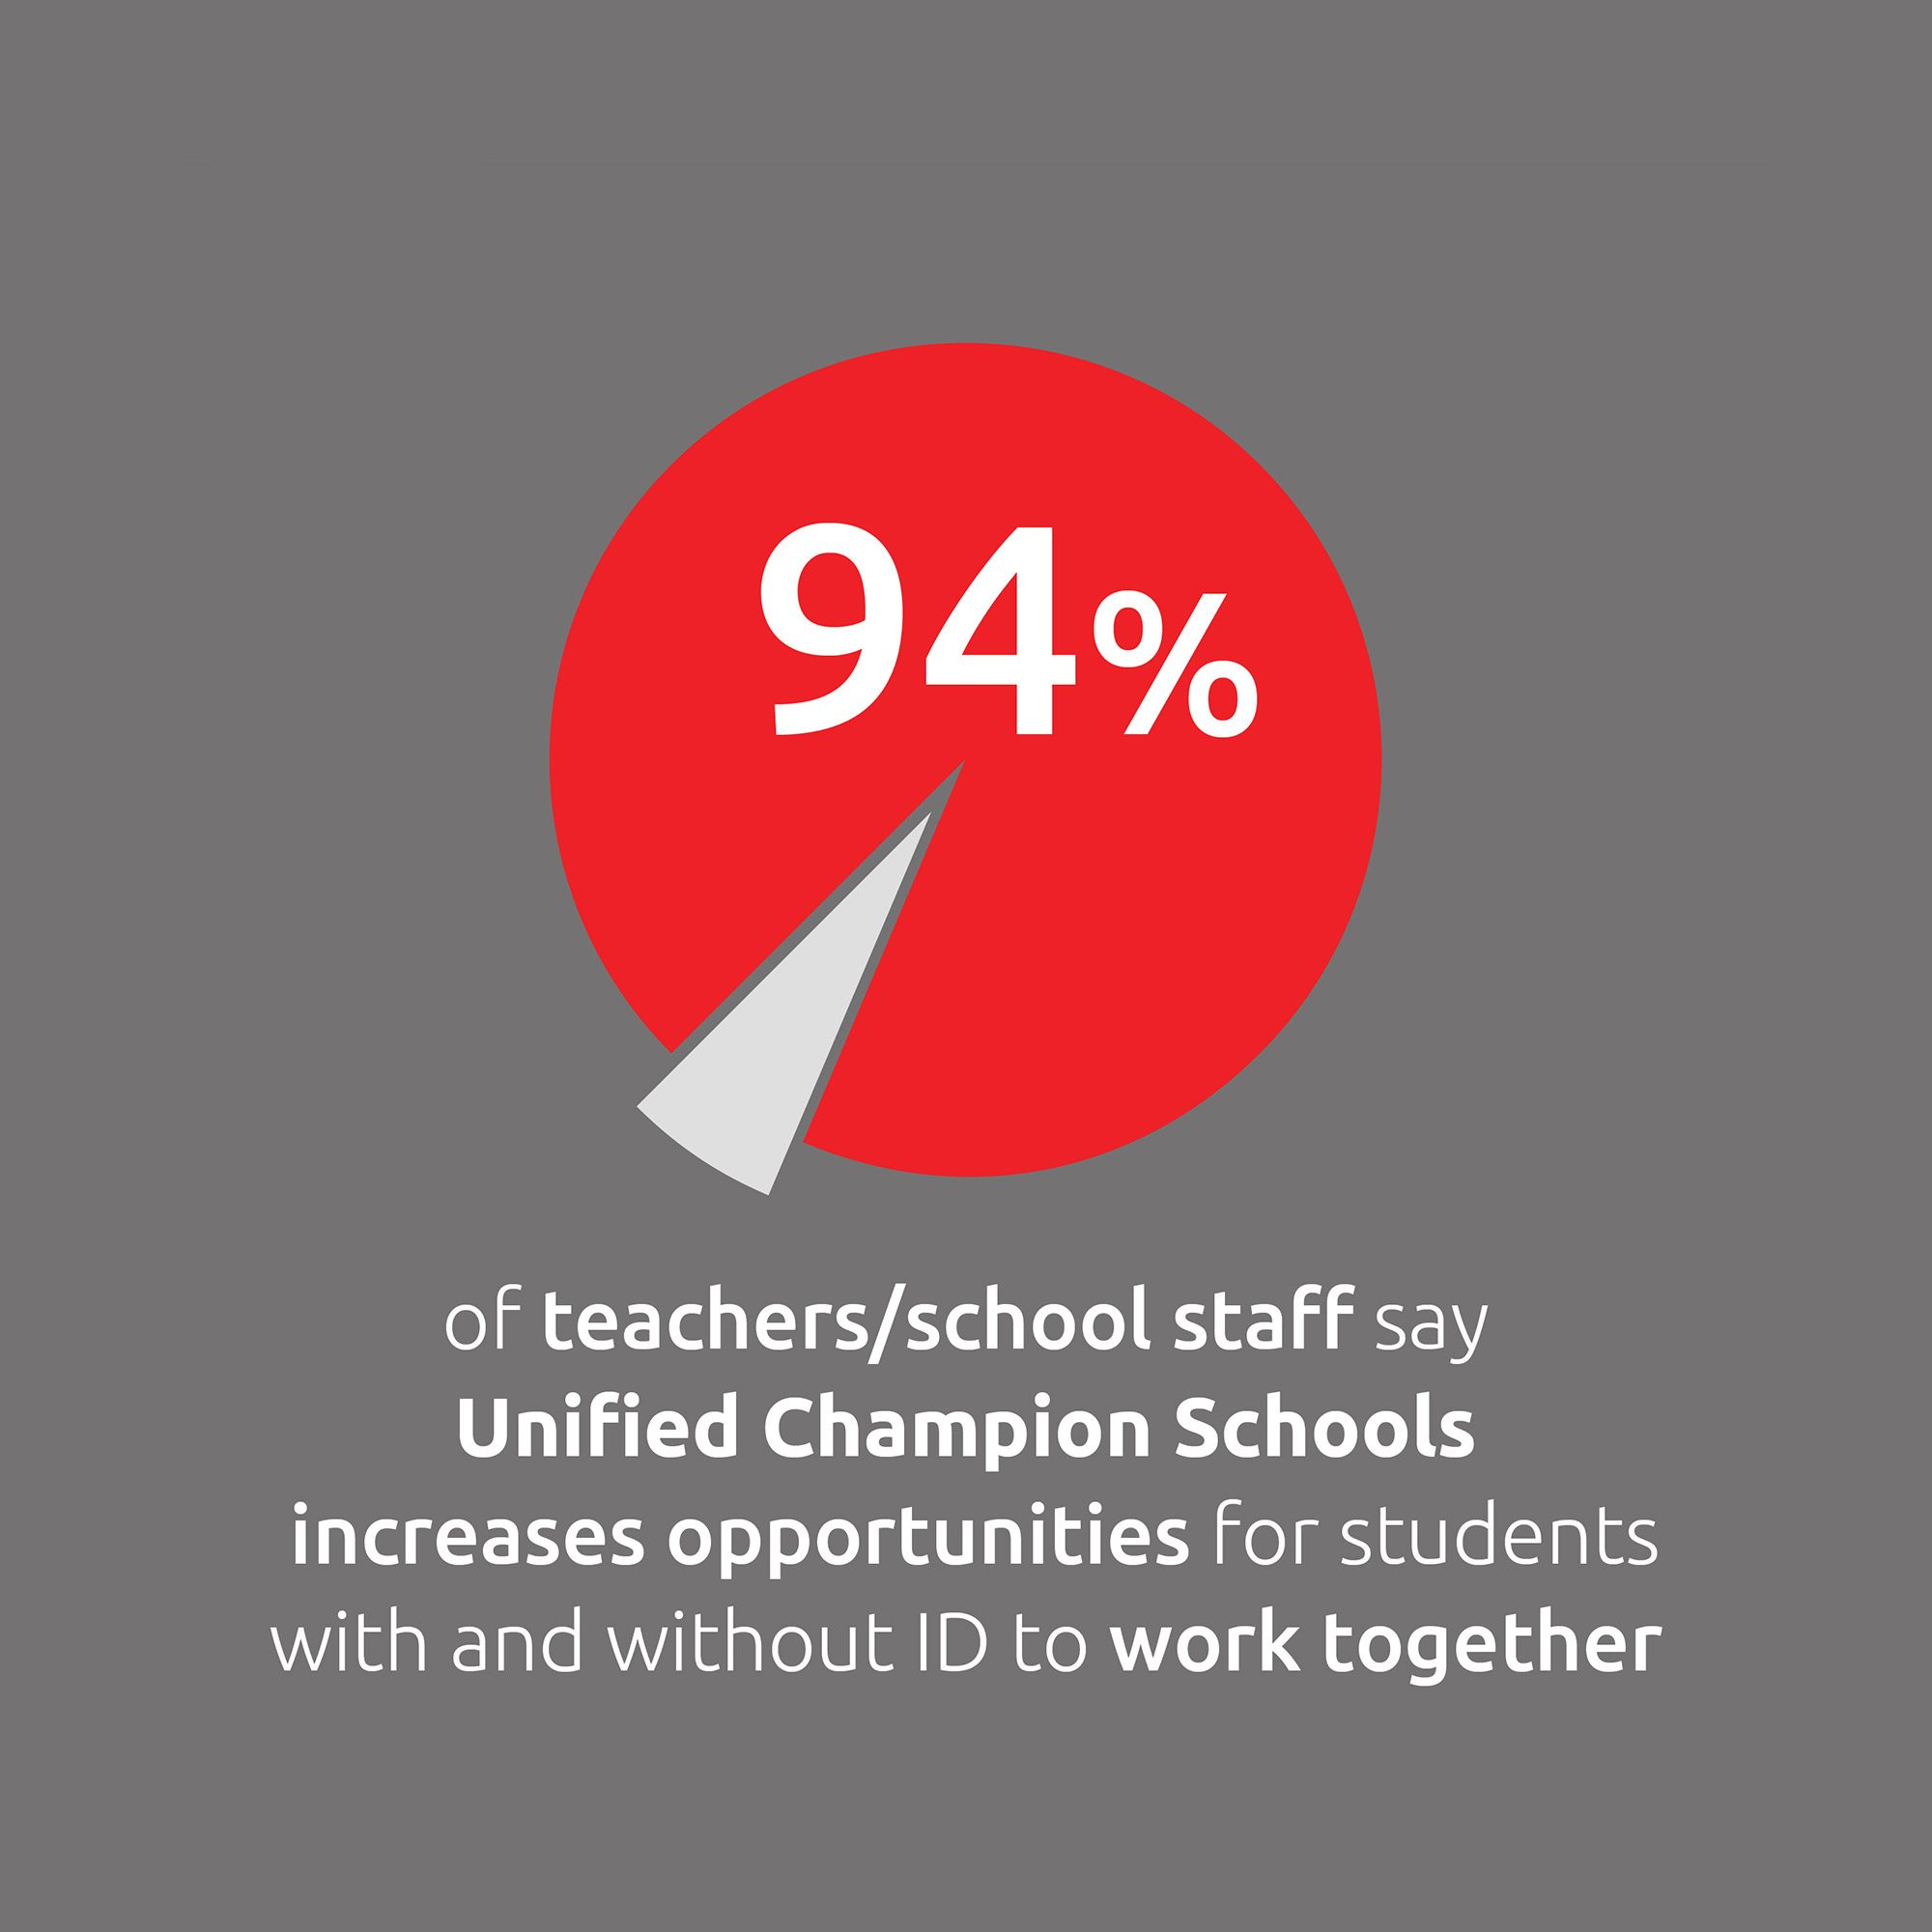 94% of teachers/ school staff say Unified Champion Schools increases opportunities for students with and without ID to work together.